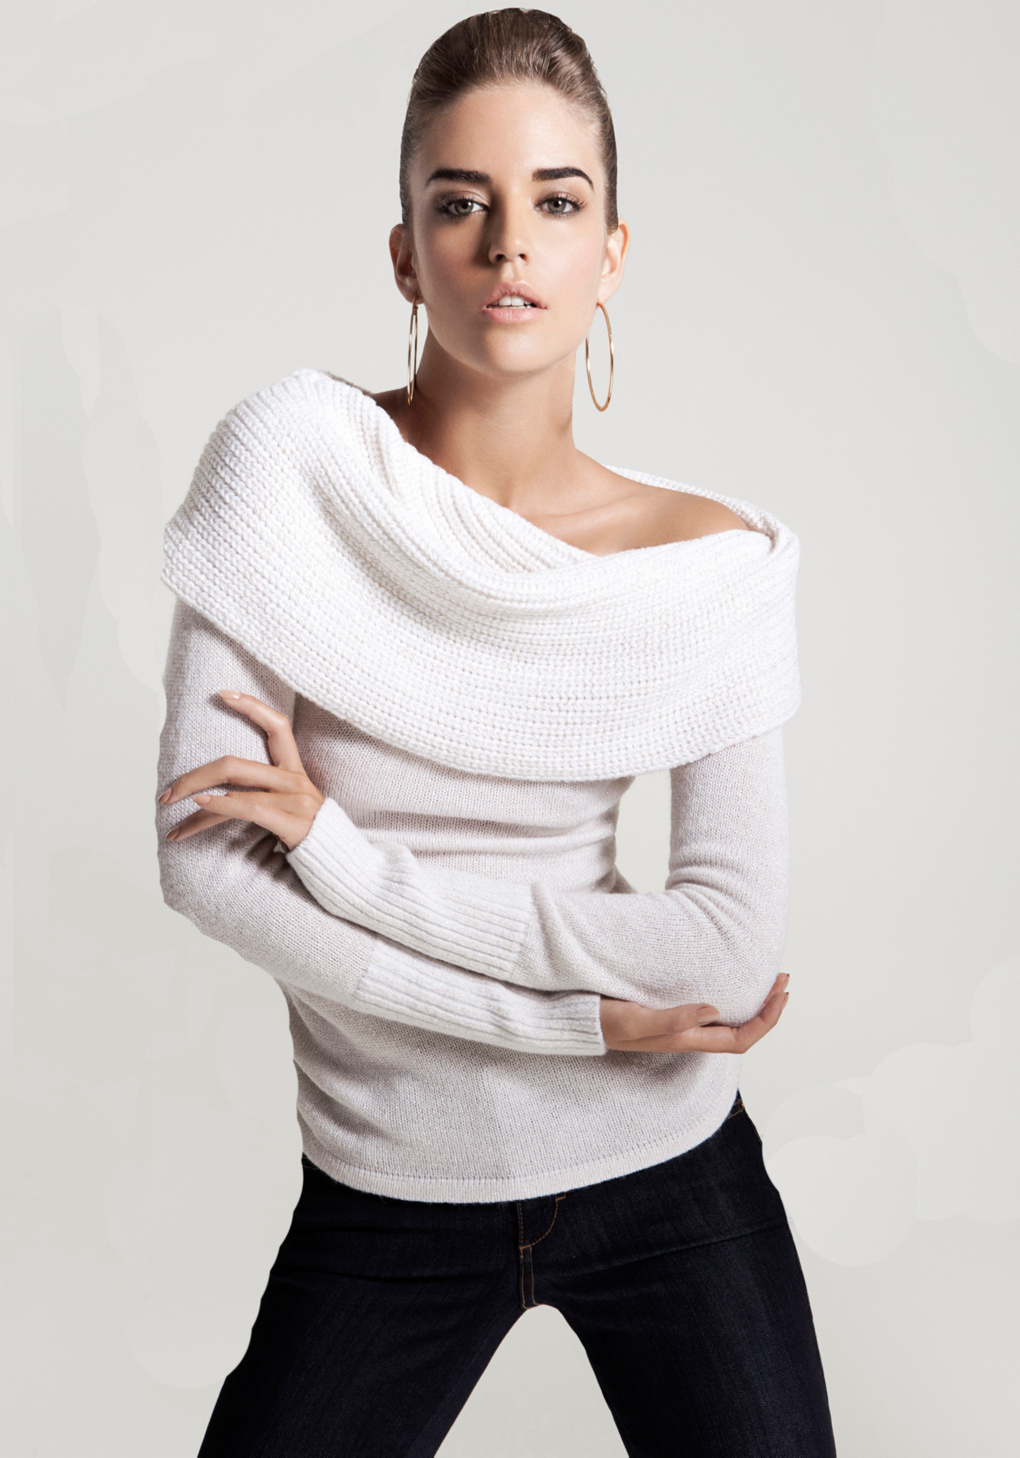 Bebe Off-Shoulder Metallic Sweater in White | Lyst